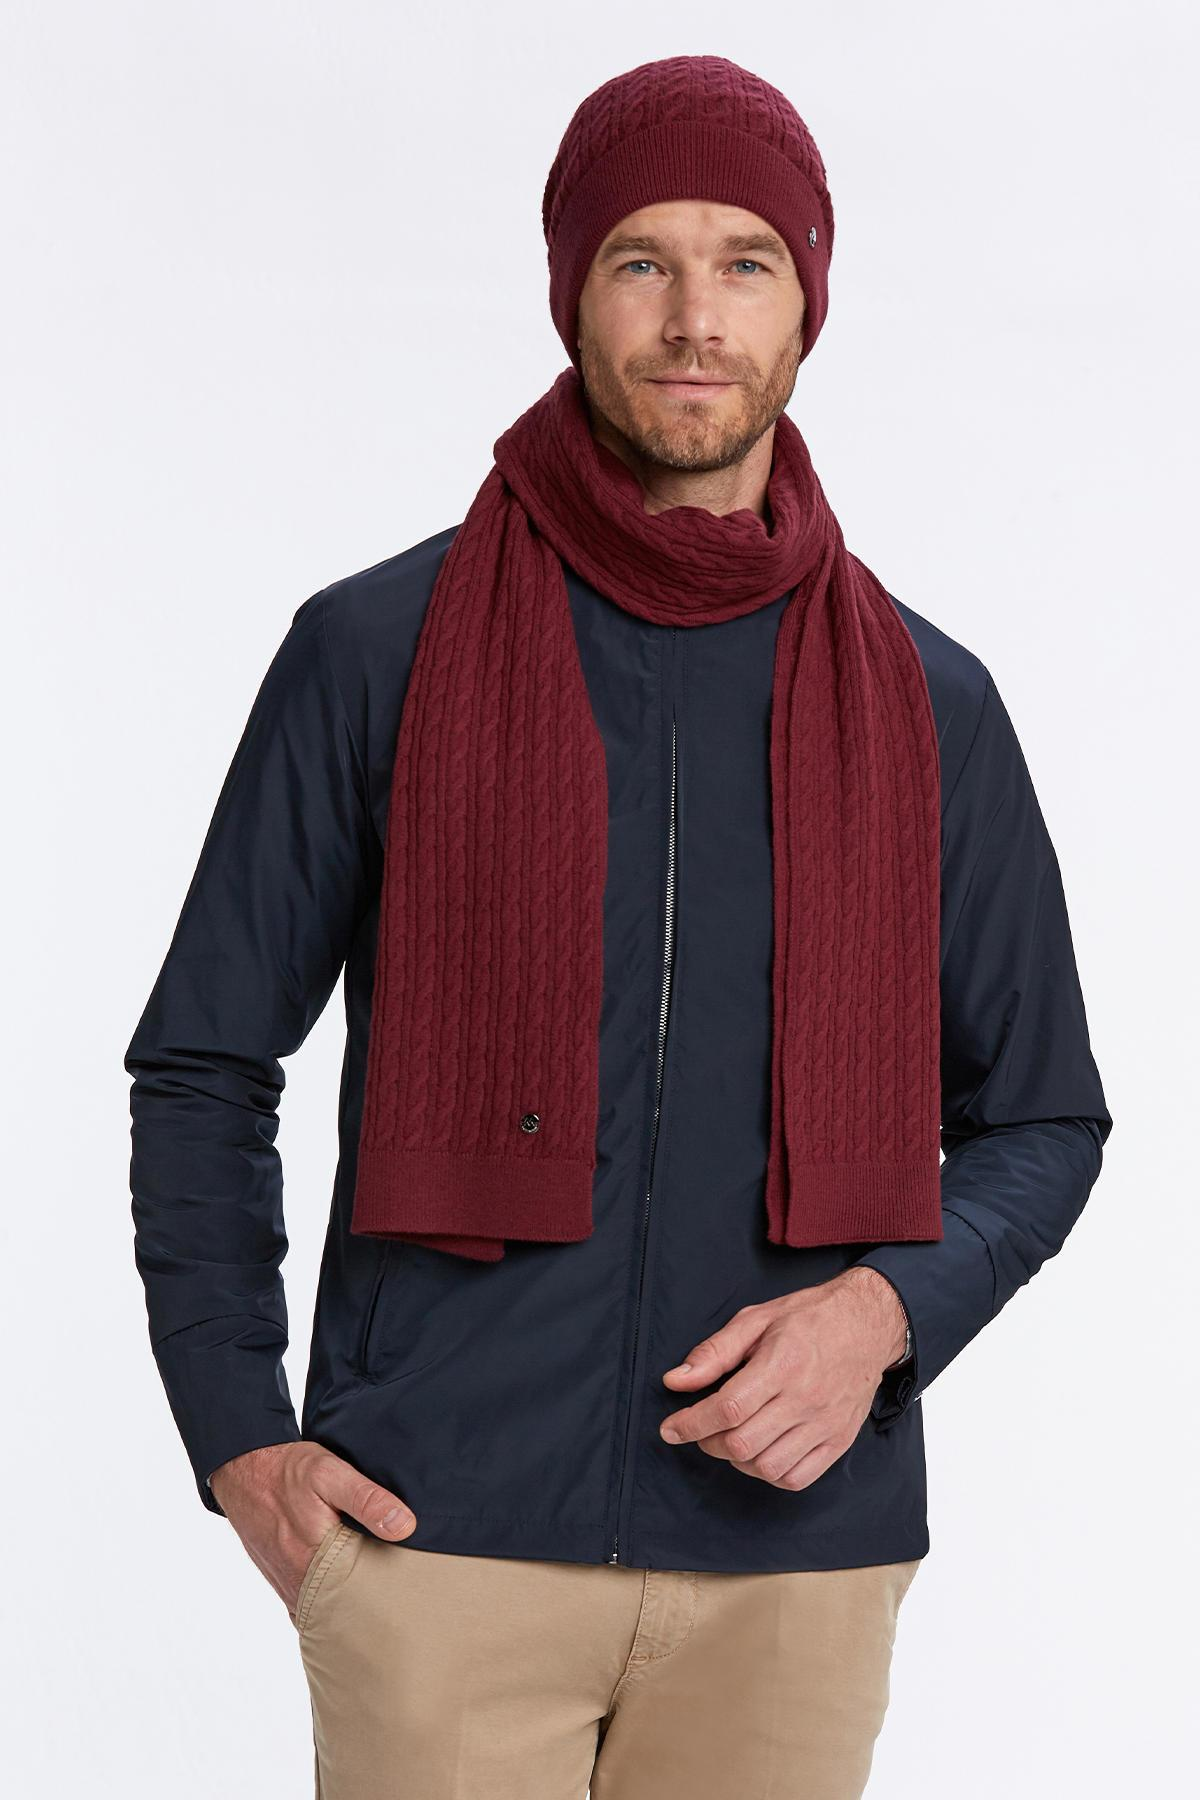 Lambswool Yün Bordo Atkı